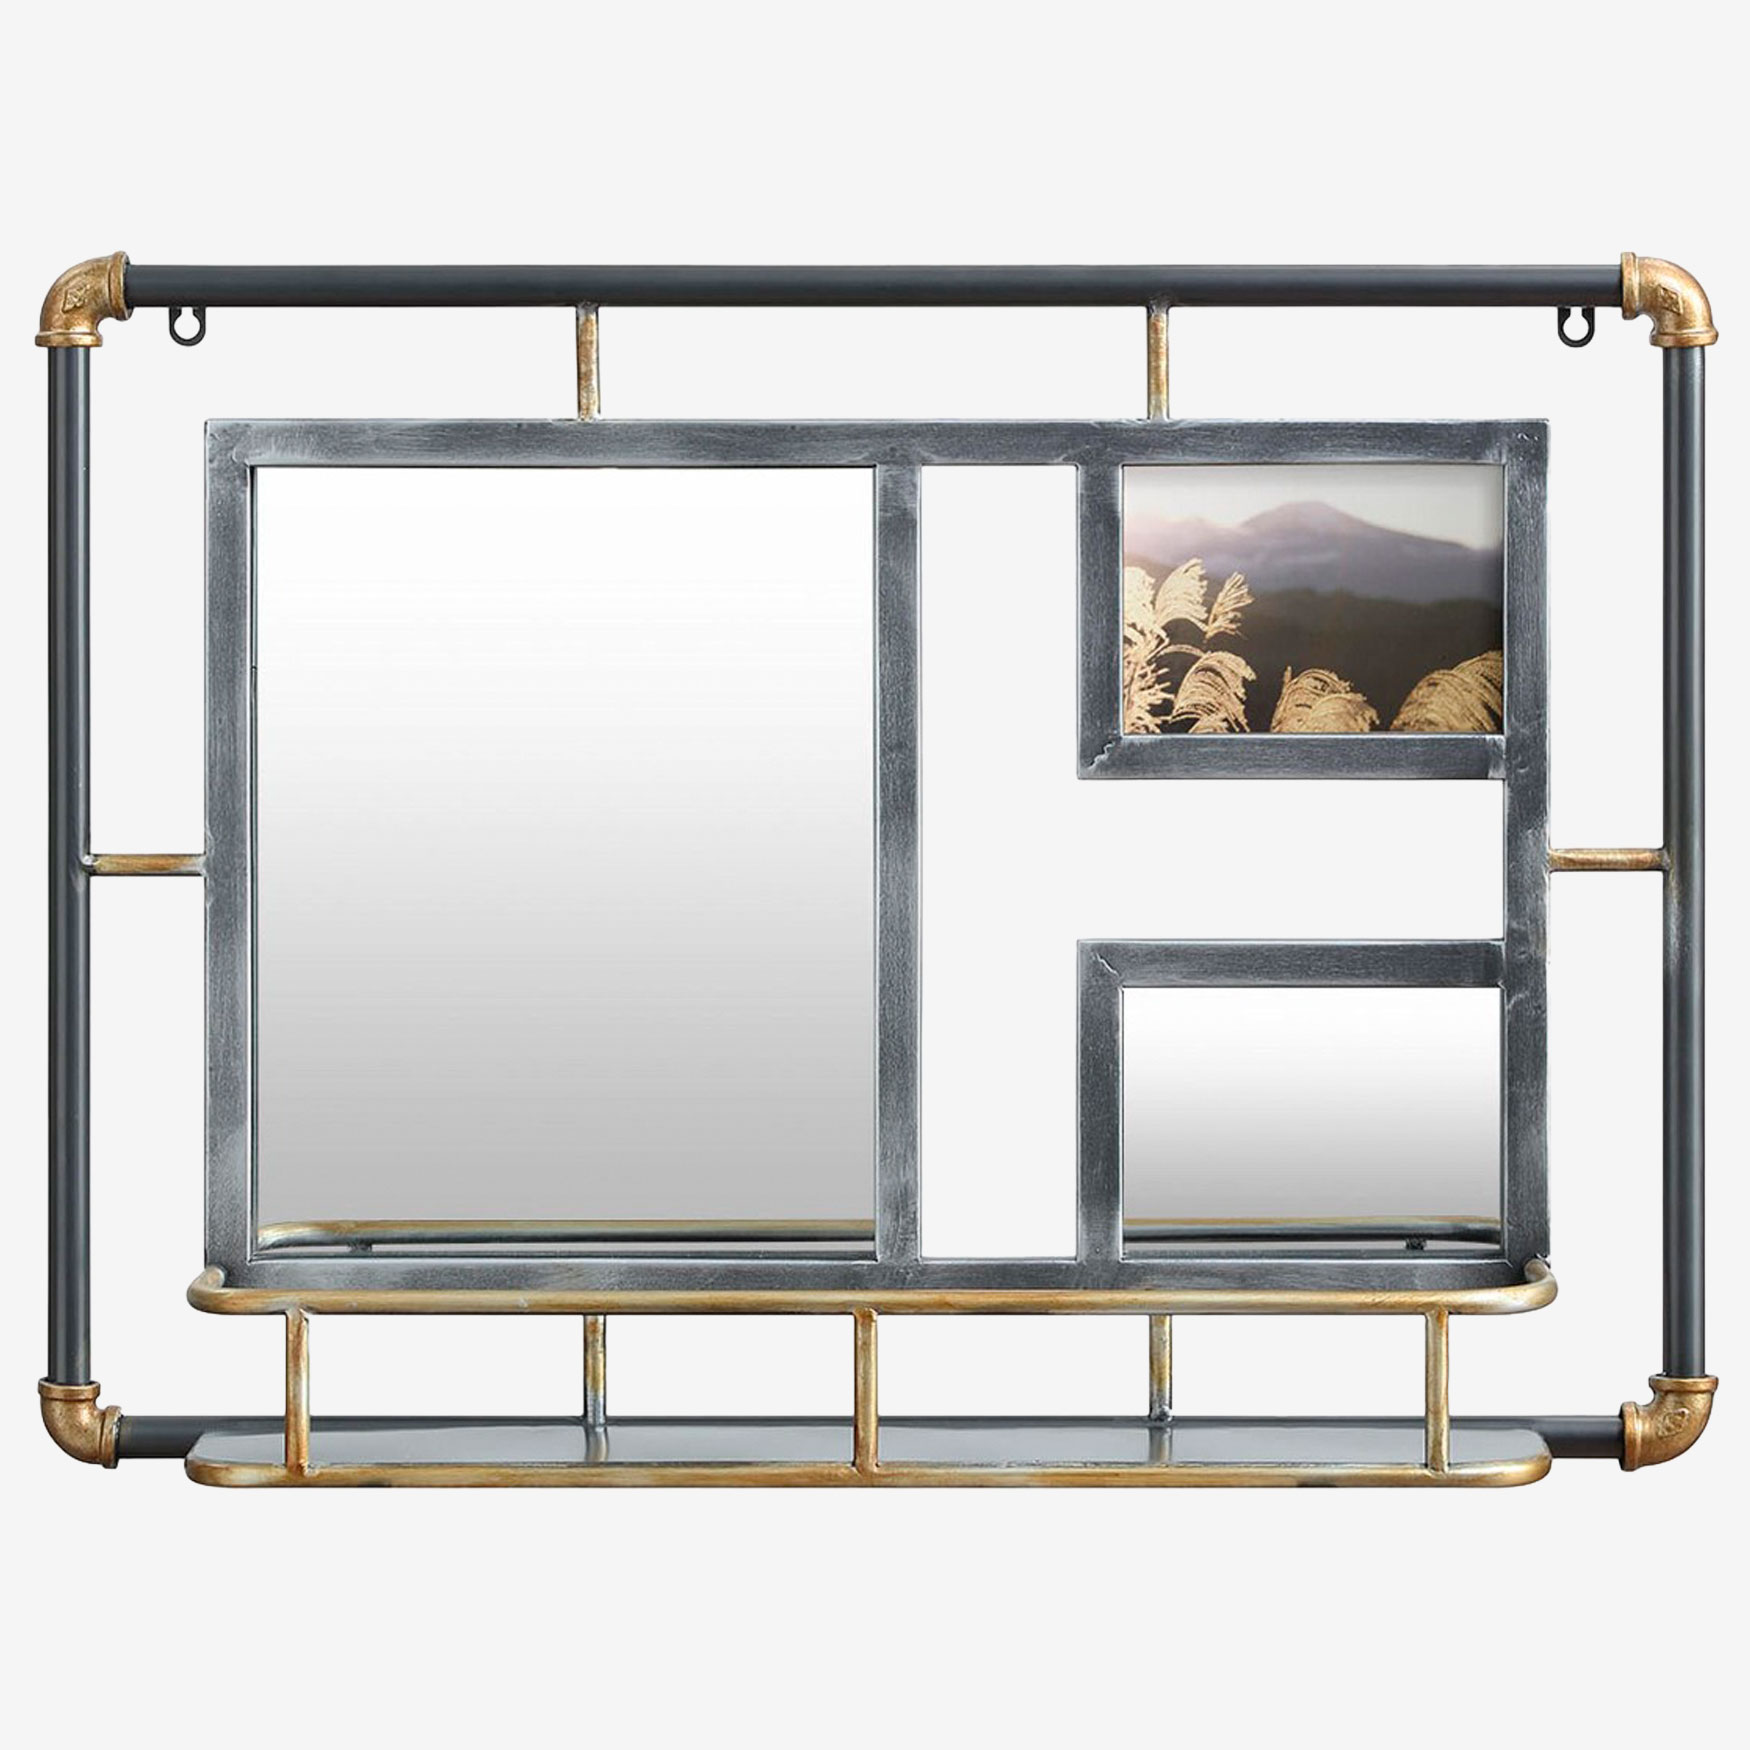 Systems Piping Mirror with Frame, RUSTIC GRAY